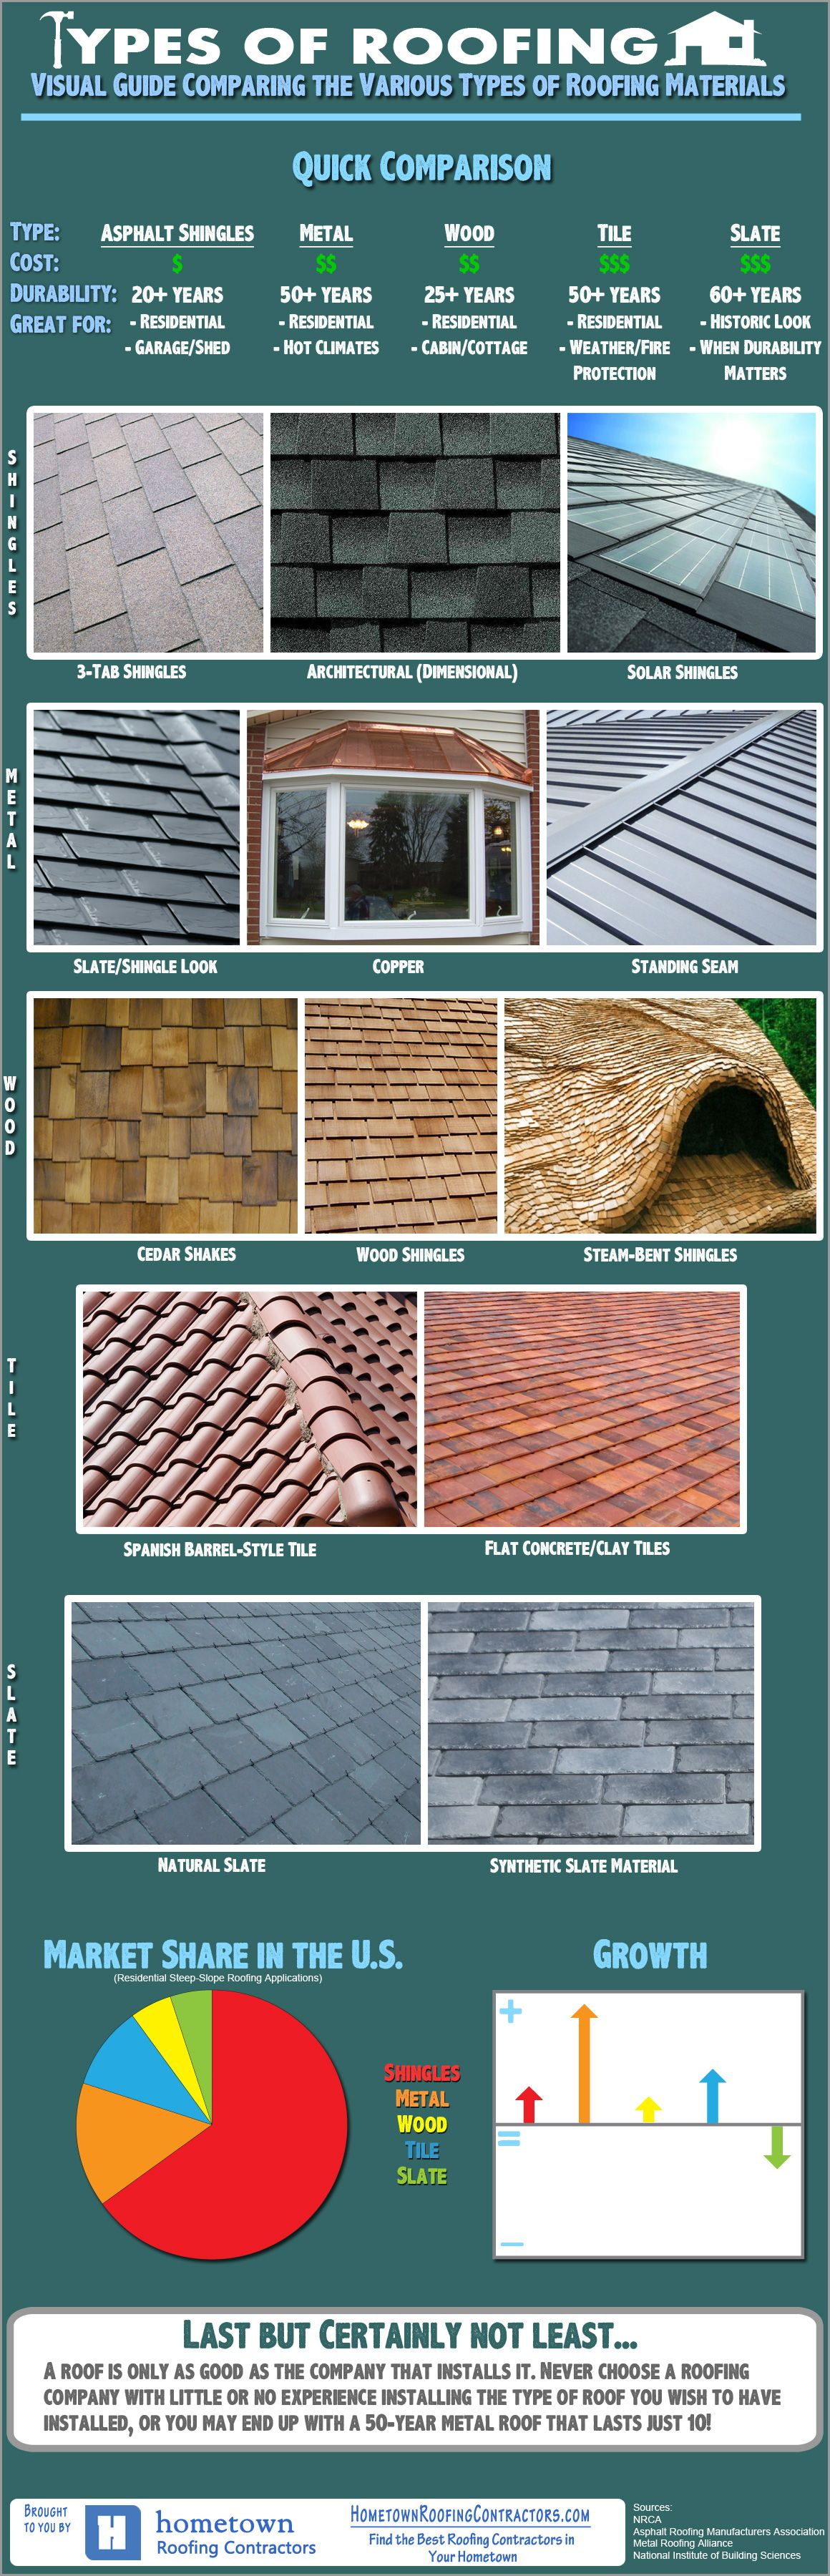 Types Of Residential Steep Slope Roofing Materials Infographic Haus Bauen Dachdecker Haus